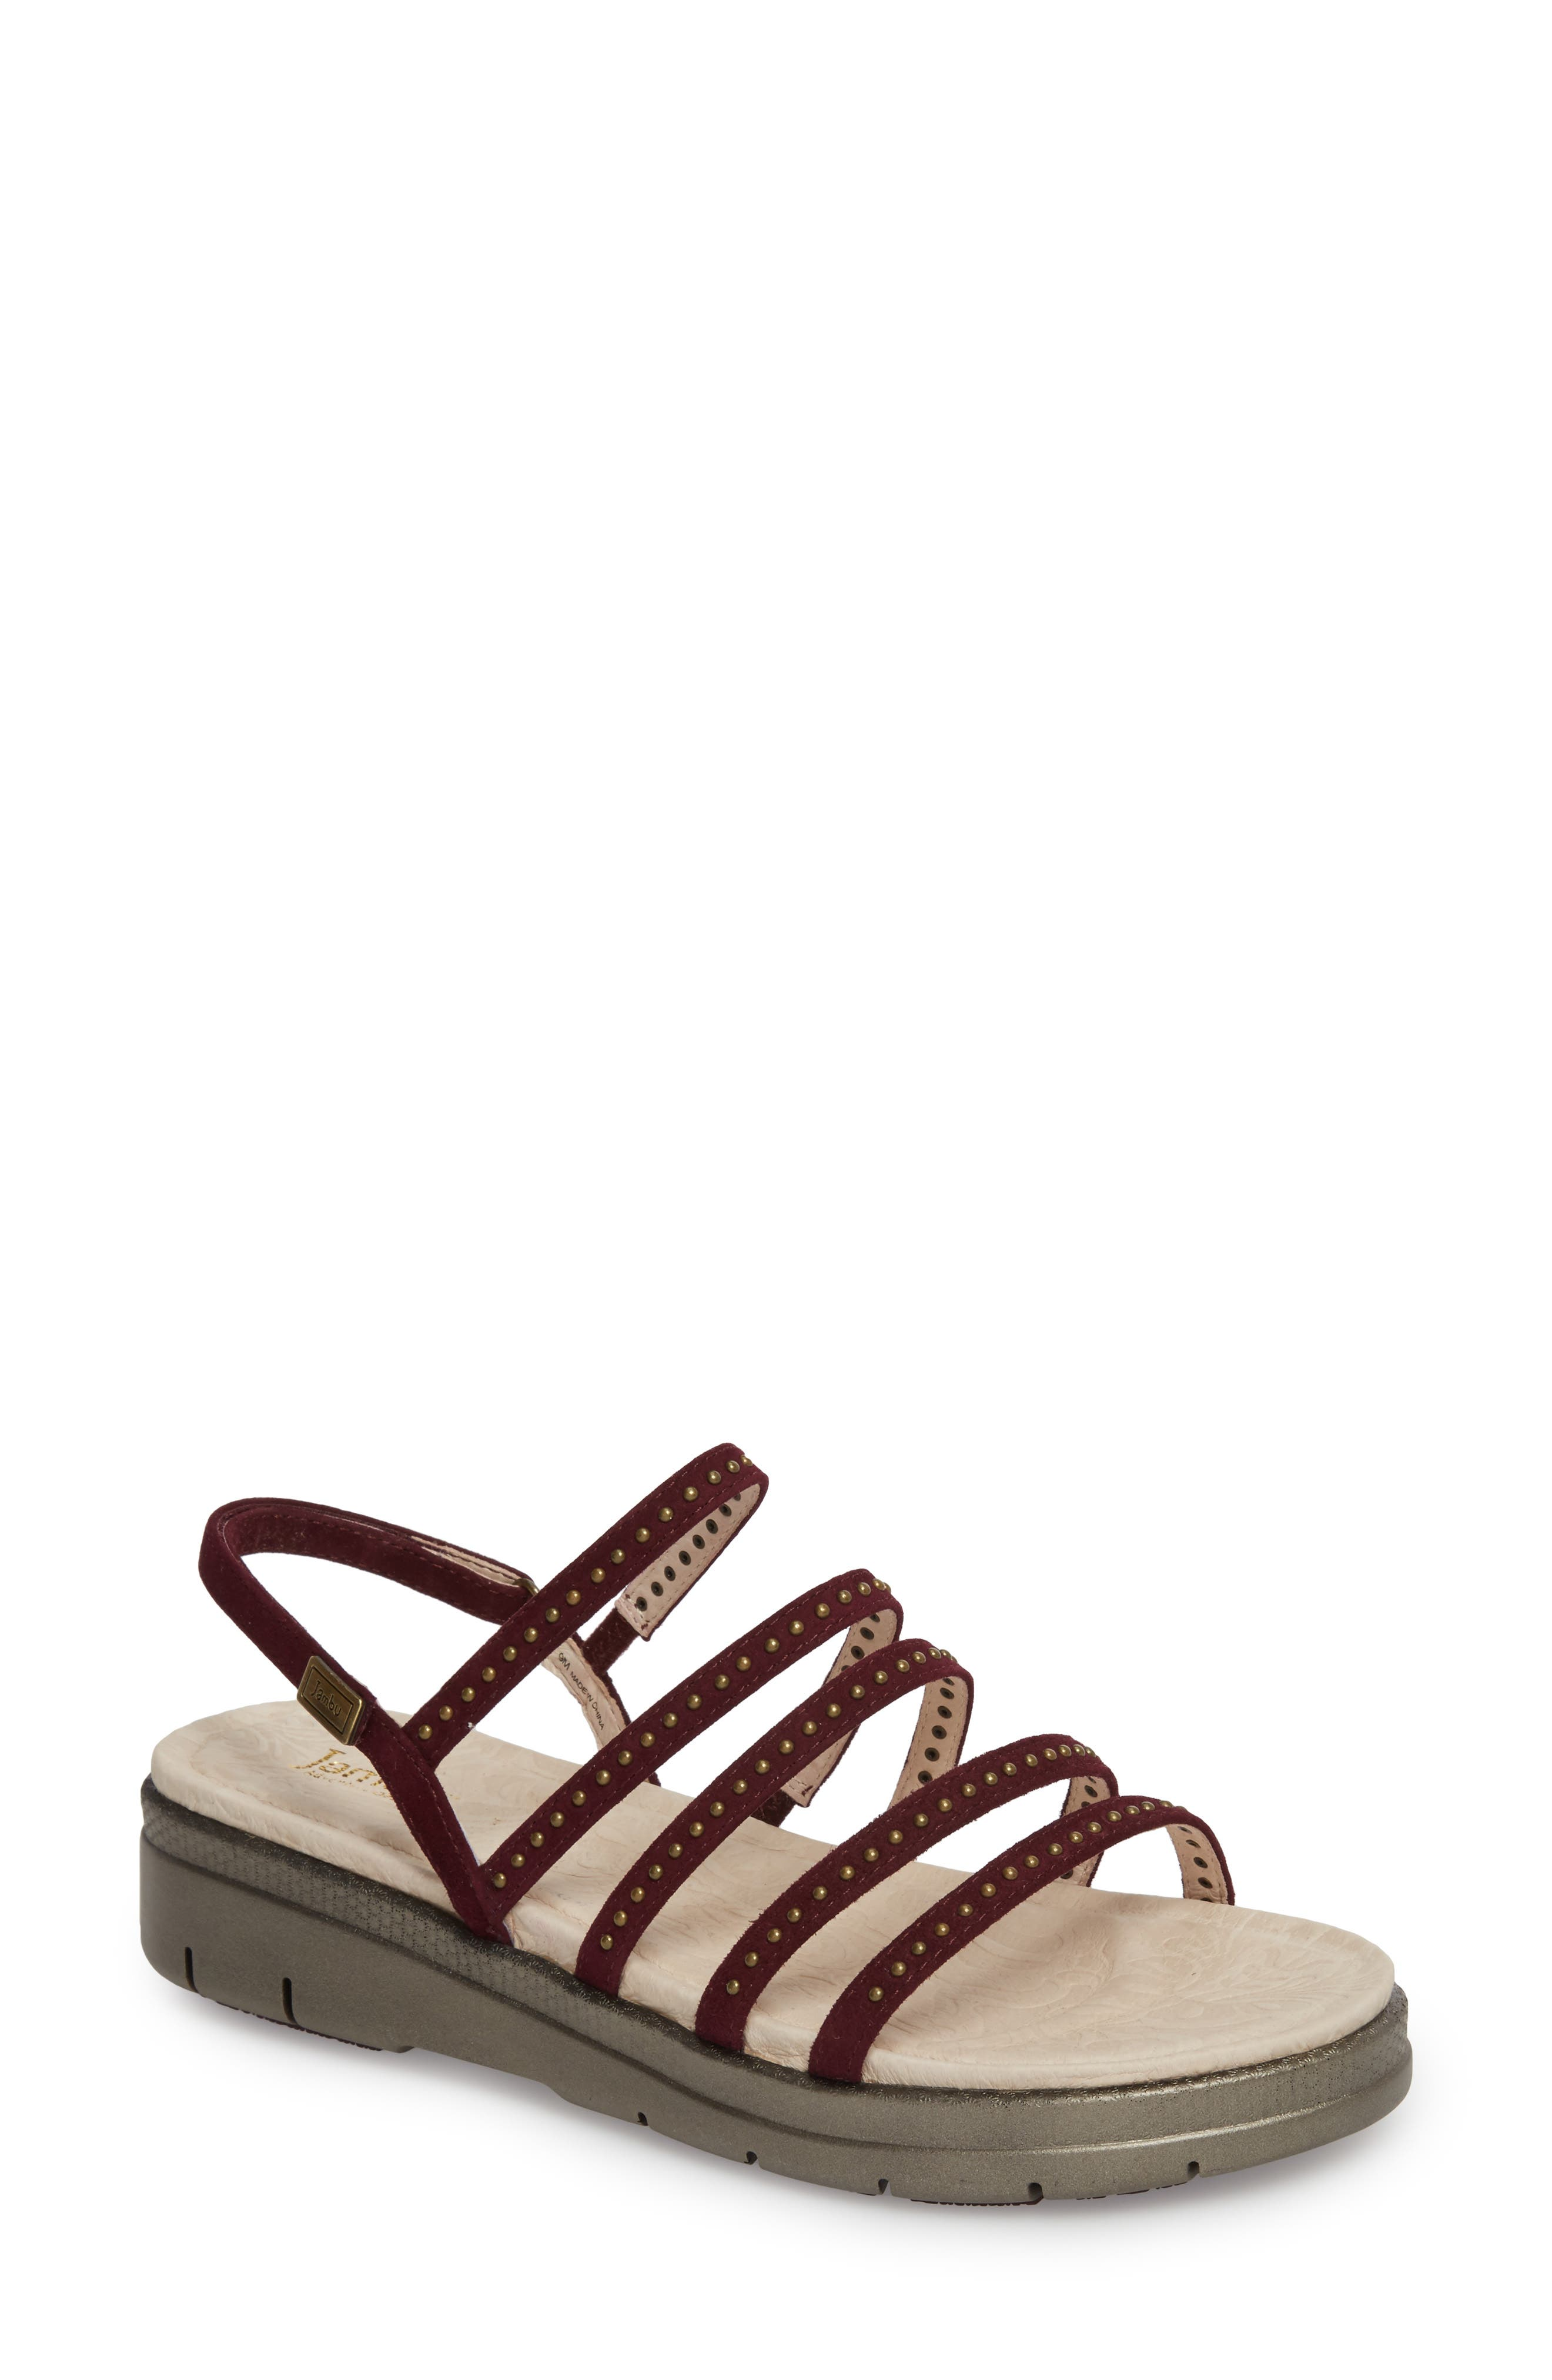 Elegance Studded Strappy Sandal,                             Main thumbnail 1, color,                             WINE SUEDE